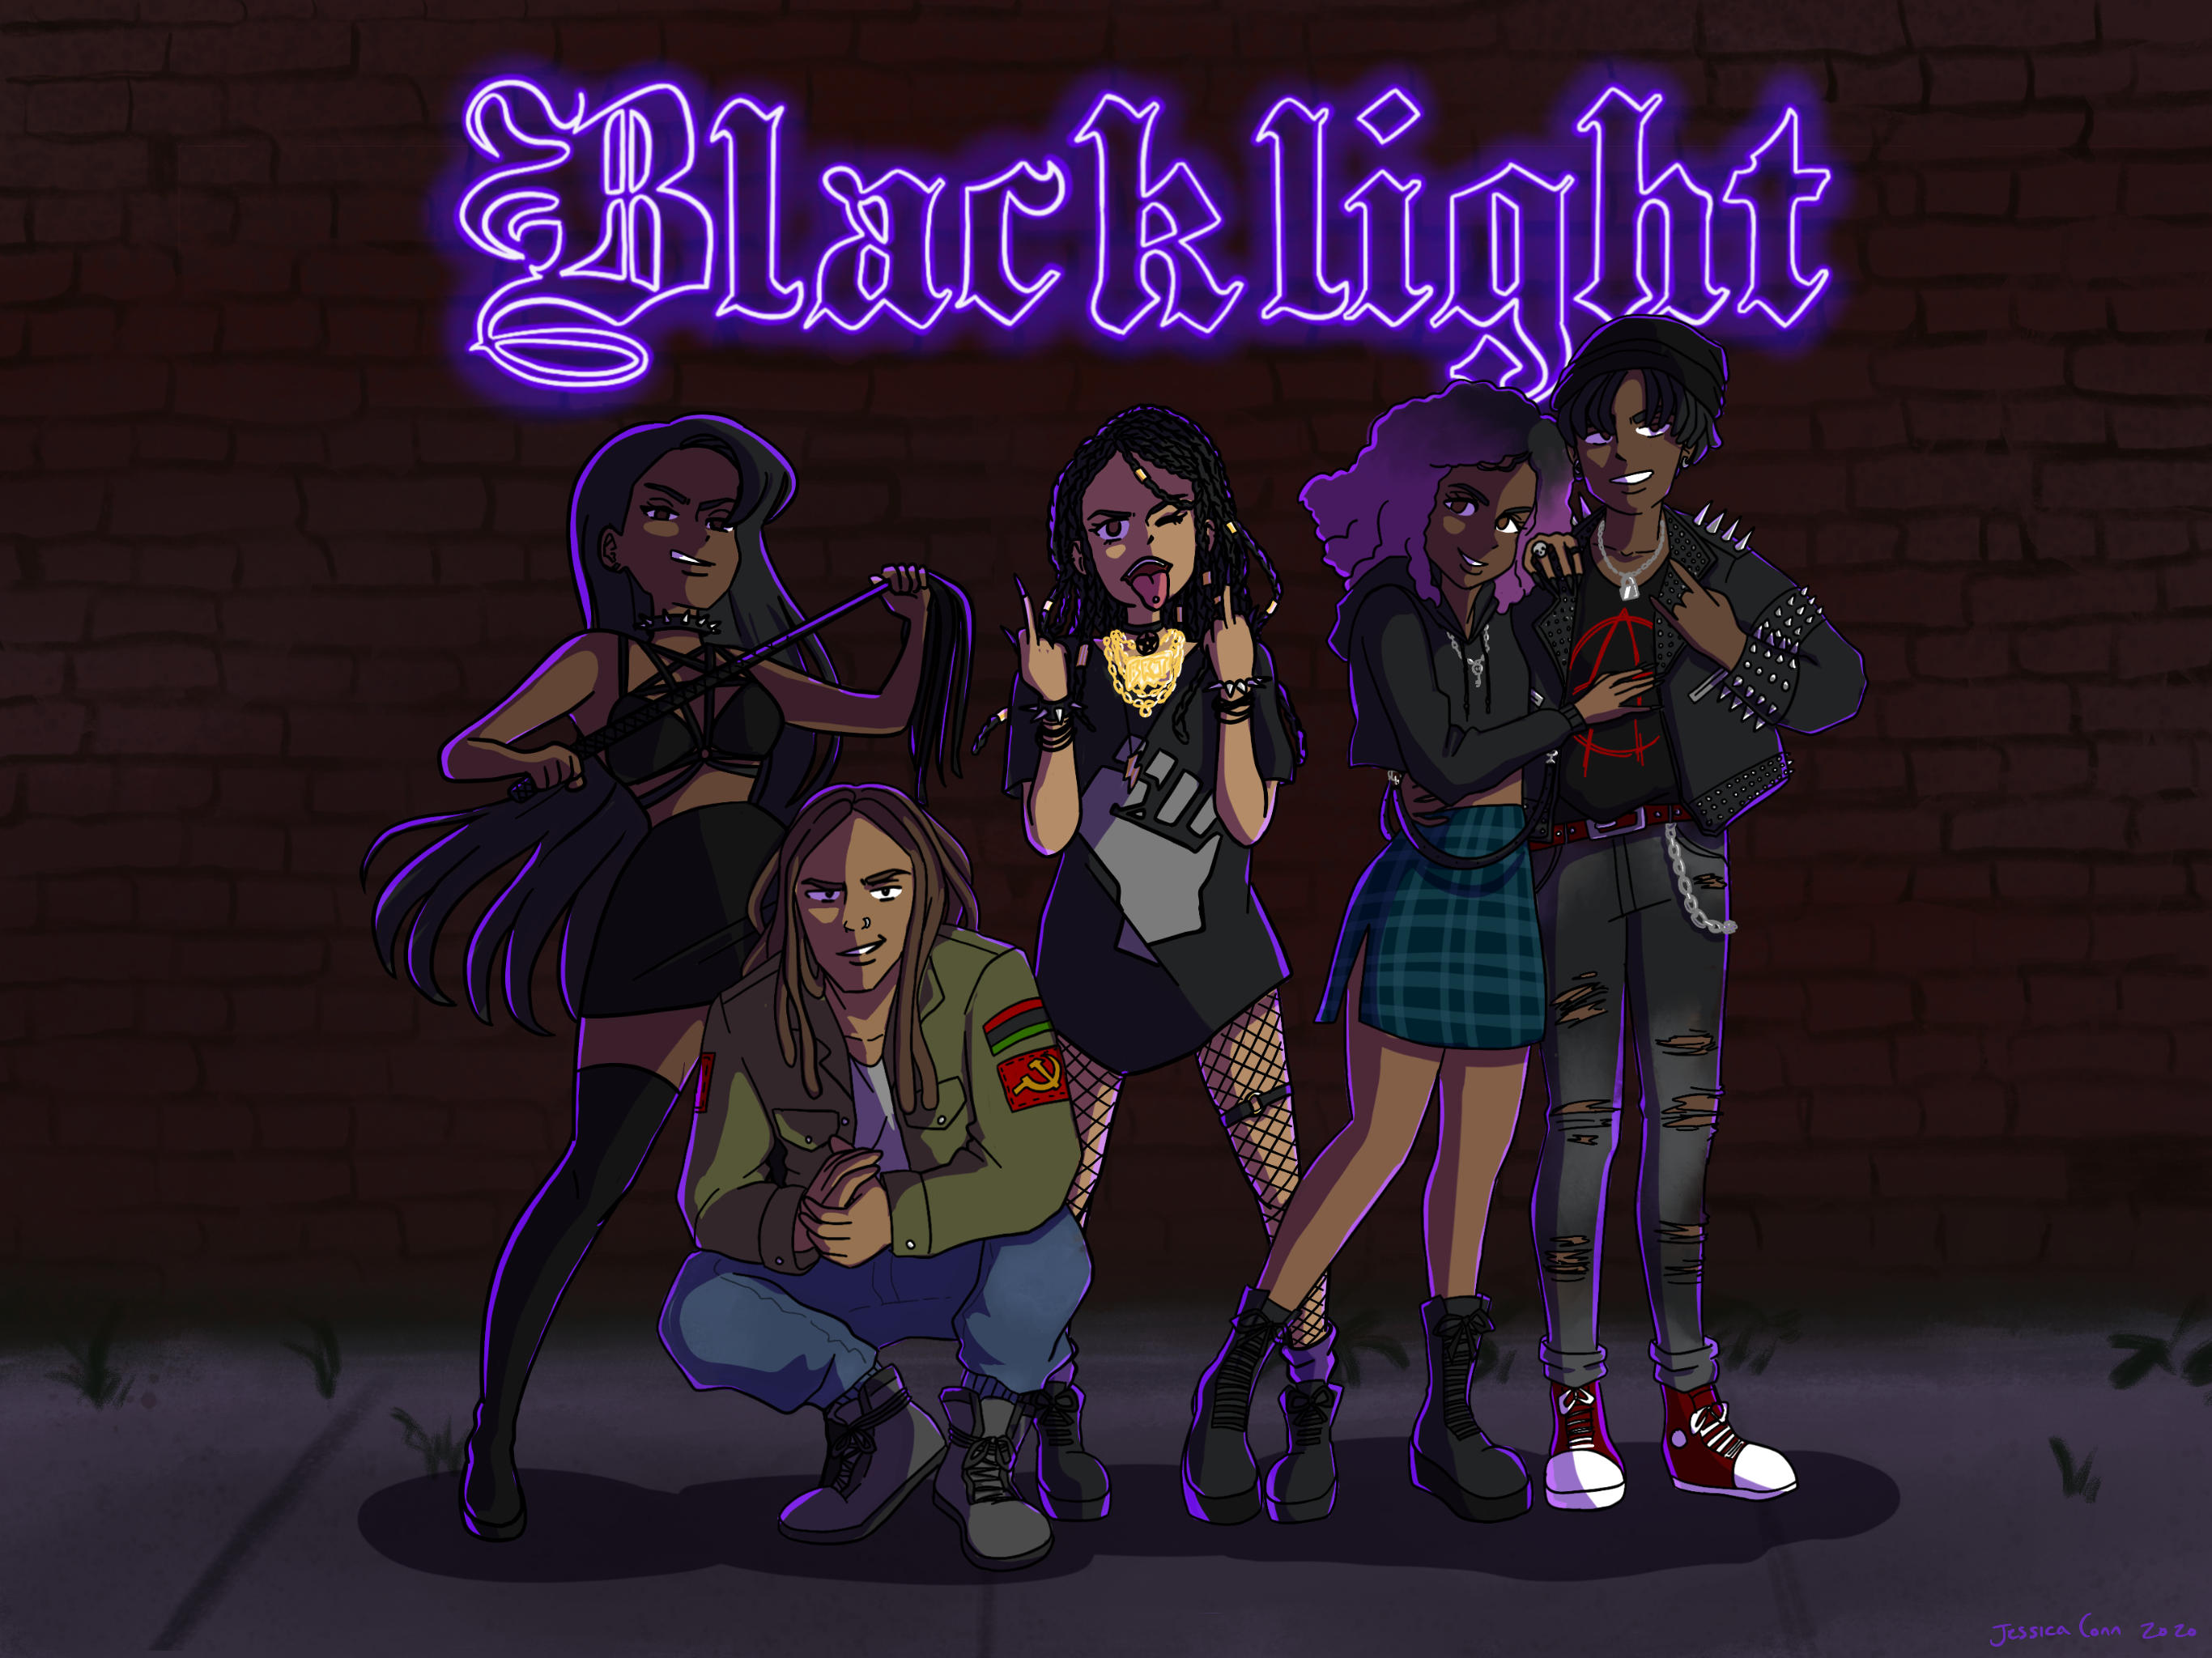 an illustration of five cartoons standing side by side against a brick wall with Blacklight in flourescent lights above